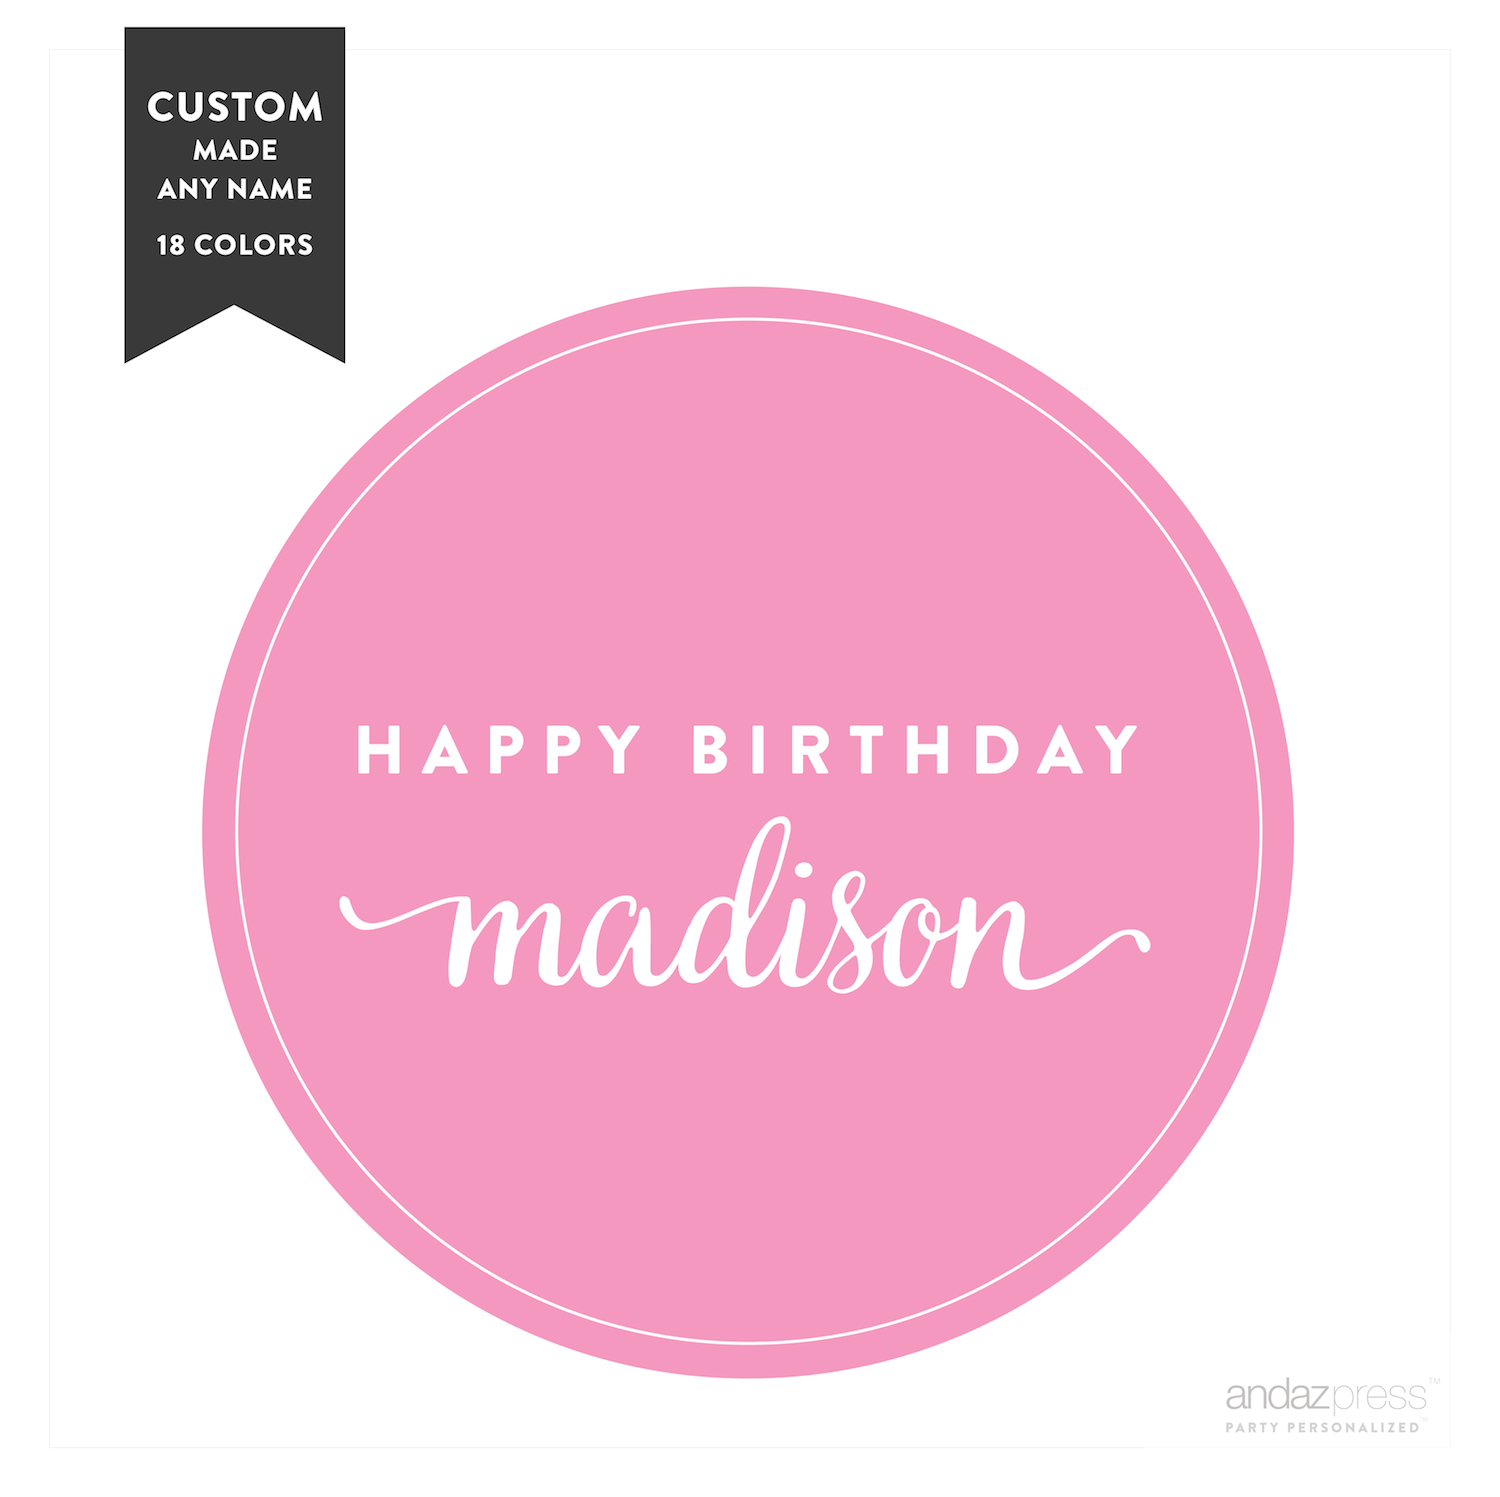 personalized birthday labels ; apc59518-andaz-press-personalized-circle-labels-birthday-happy-birthday-name